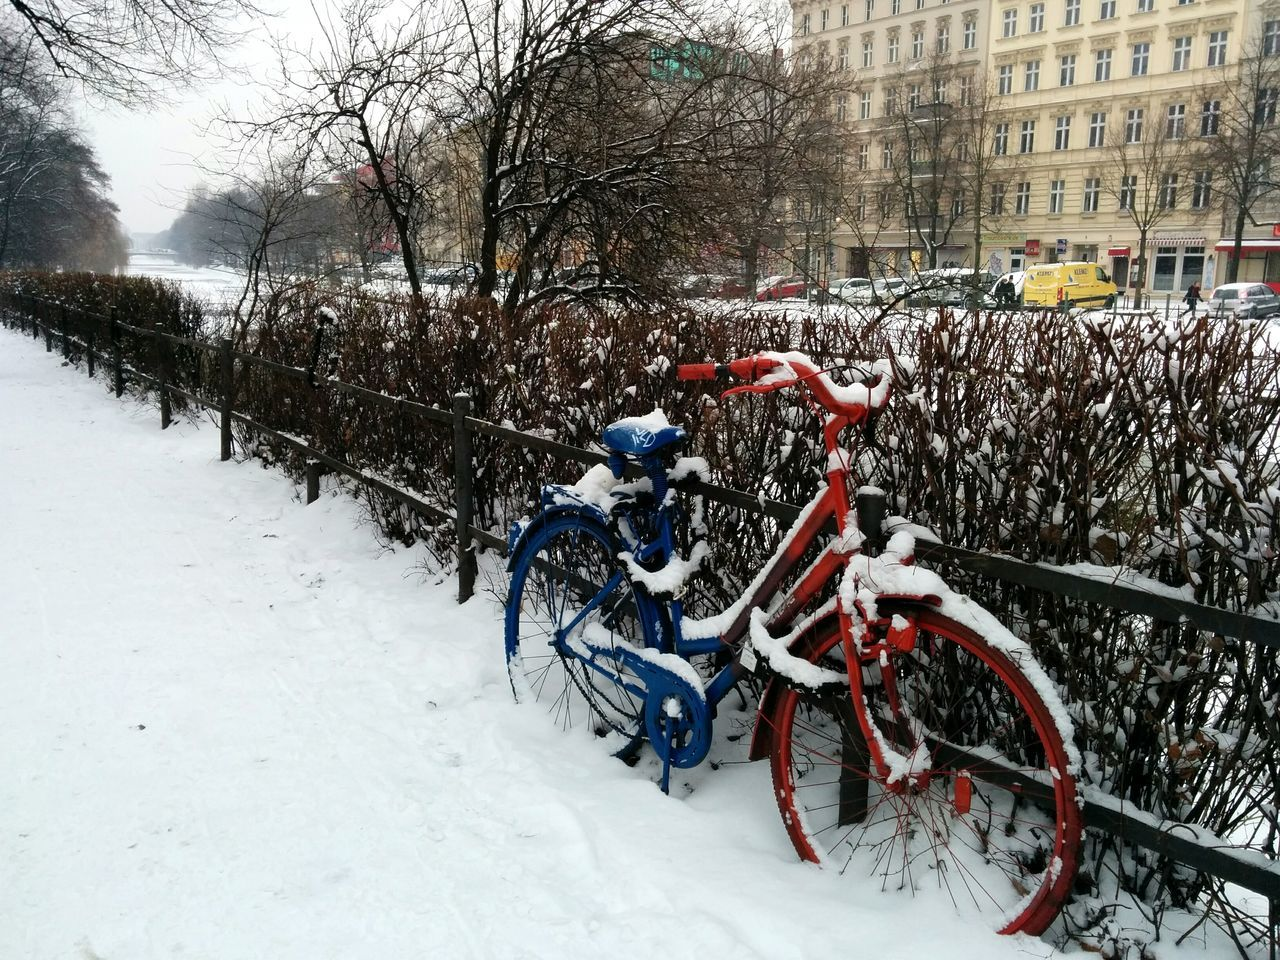 Bicycle Parked On Snowcapped Footpath During Winter